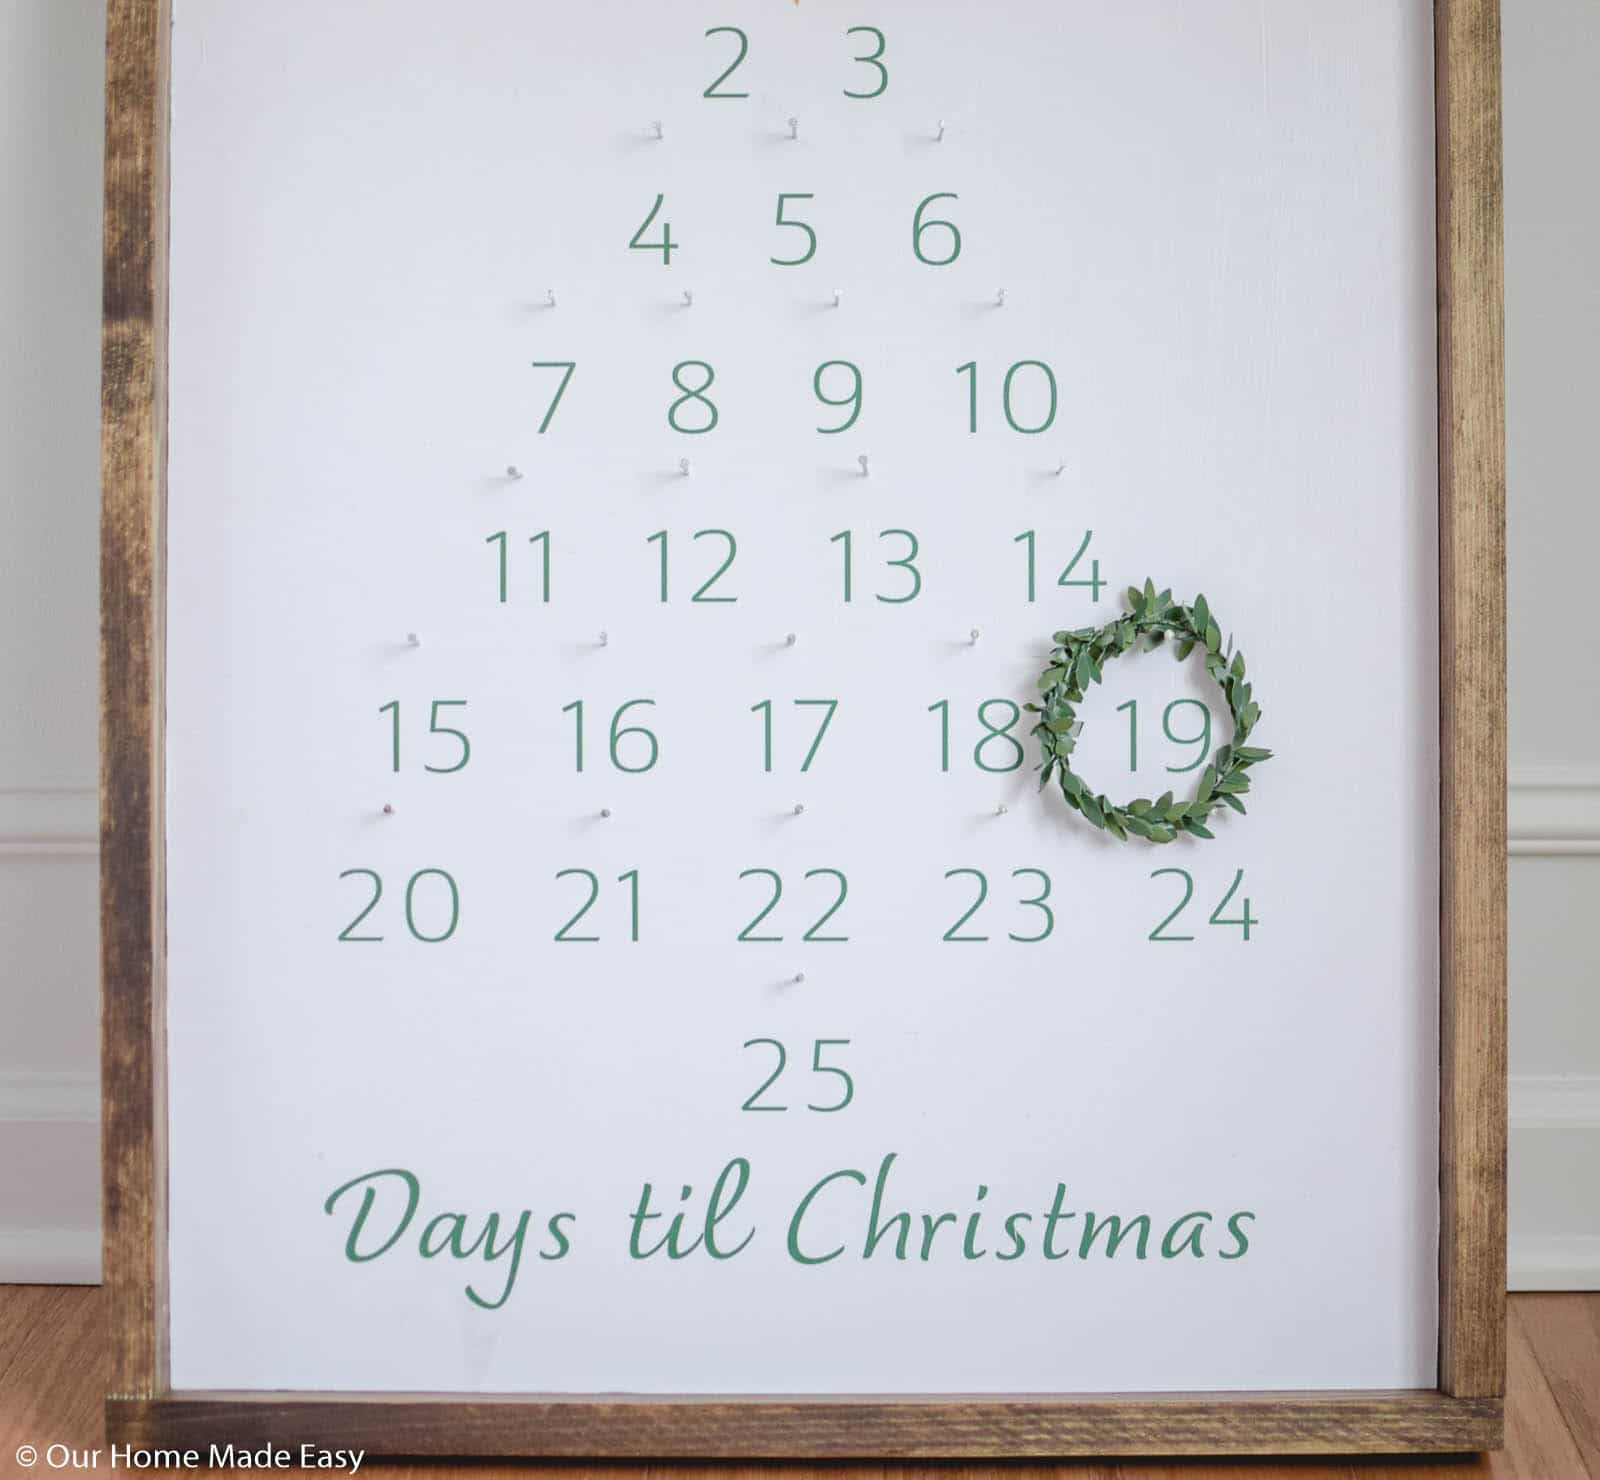 a simple wreath is used as the ornament to circle the day throughout the calendar